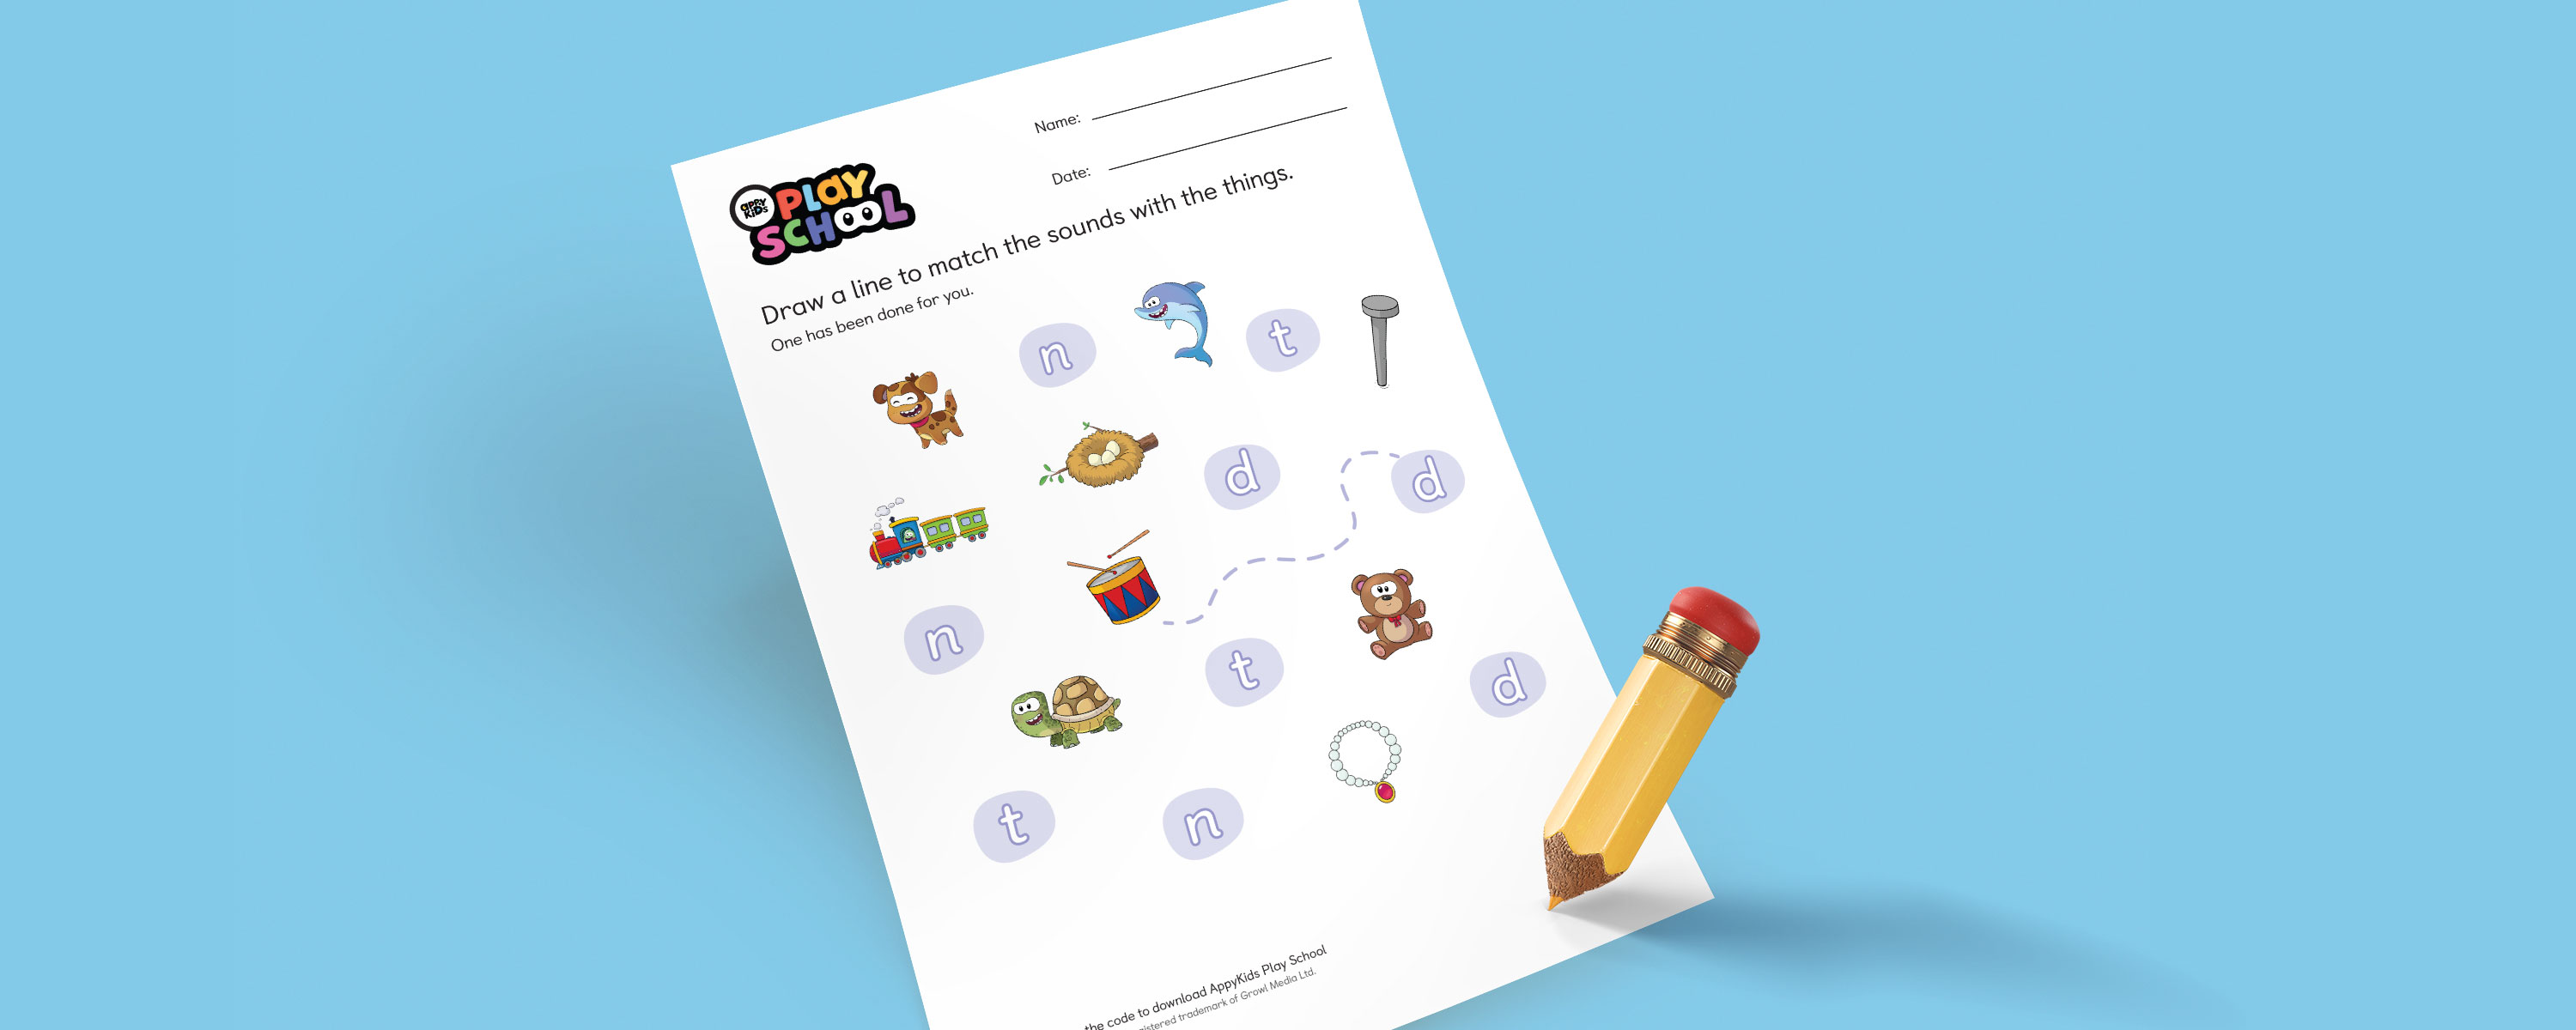 Draw a line to match the sound worksheet - N D T - AppyKids